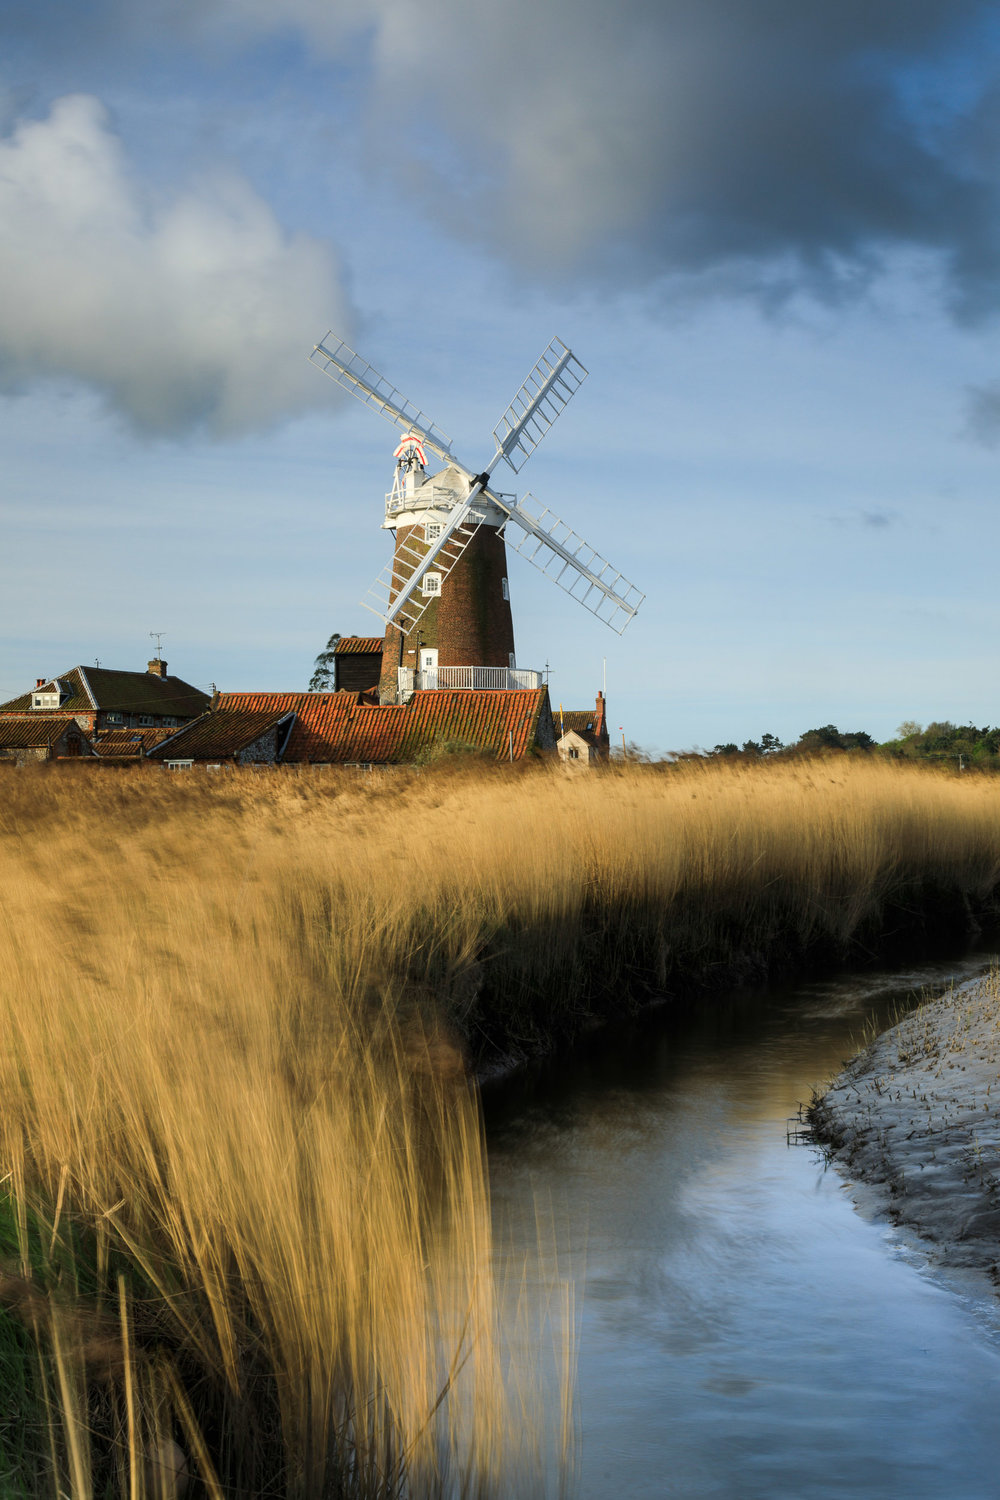 The windmill at Cley, Norfolk